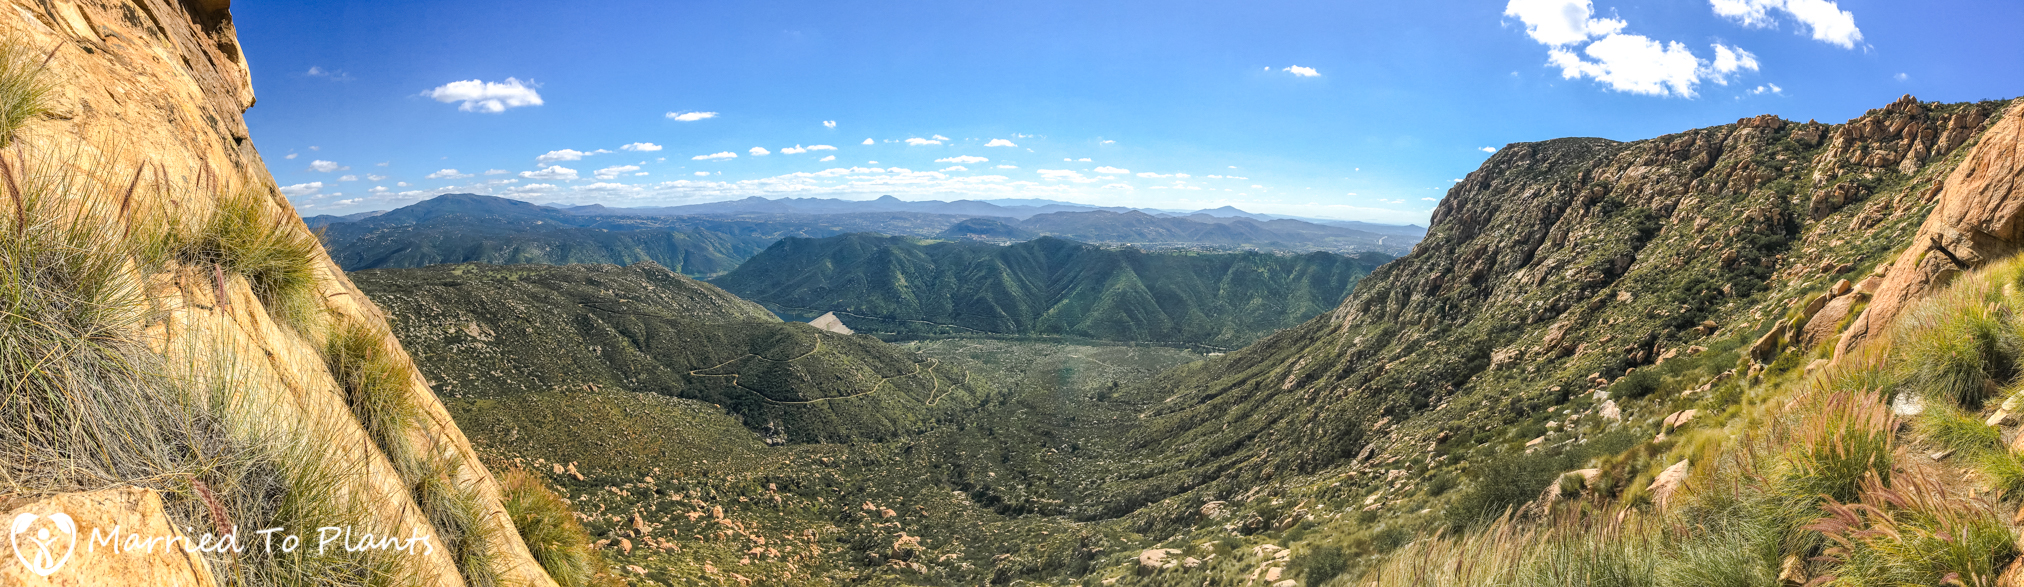 El Cajon Mountain Panoramic